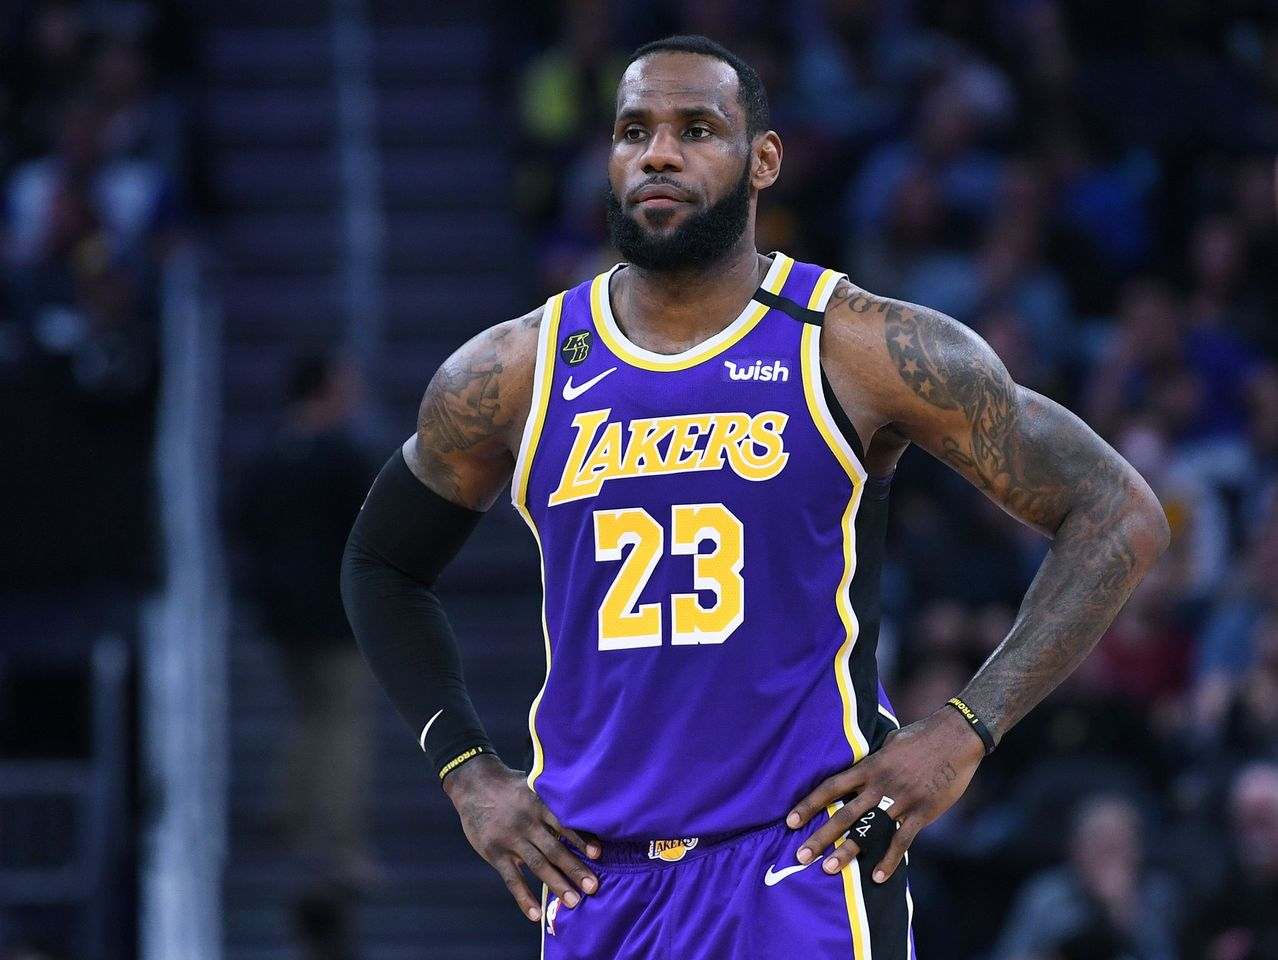 LeBron James #23 of the Los Angeles Lakers looks on against the Golden State Warriors during an NBA basketball game at Chase Center on February 08, 2020. | Source: Getty Images